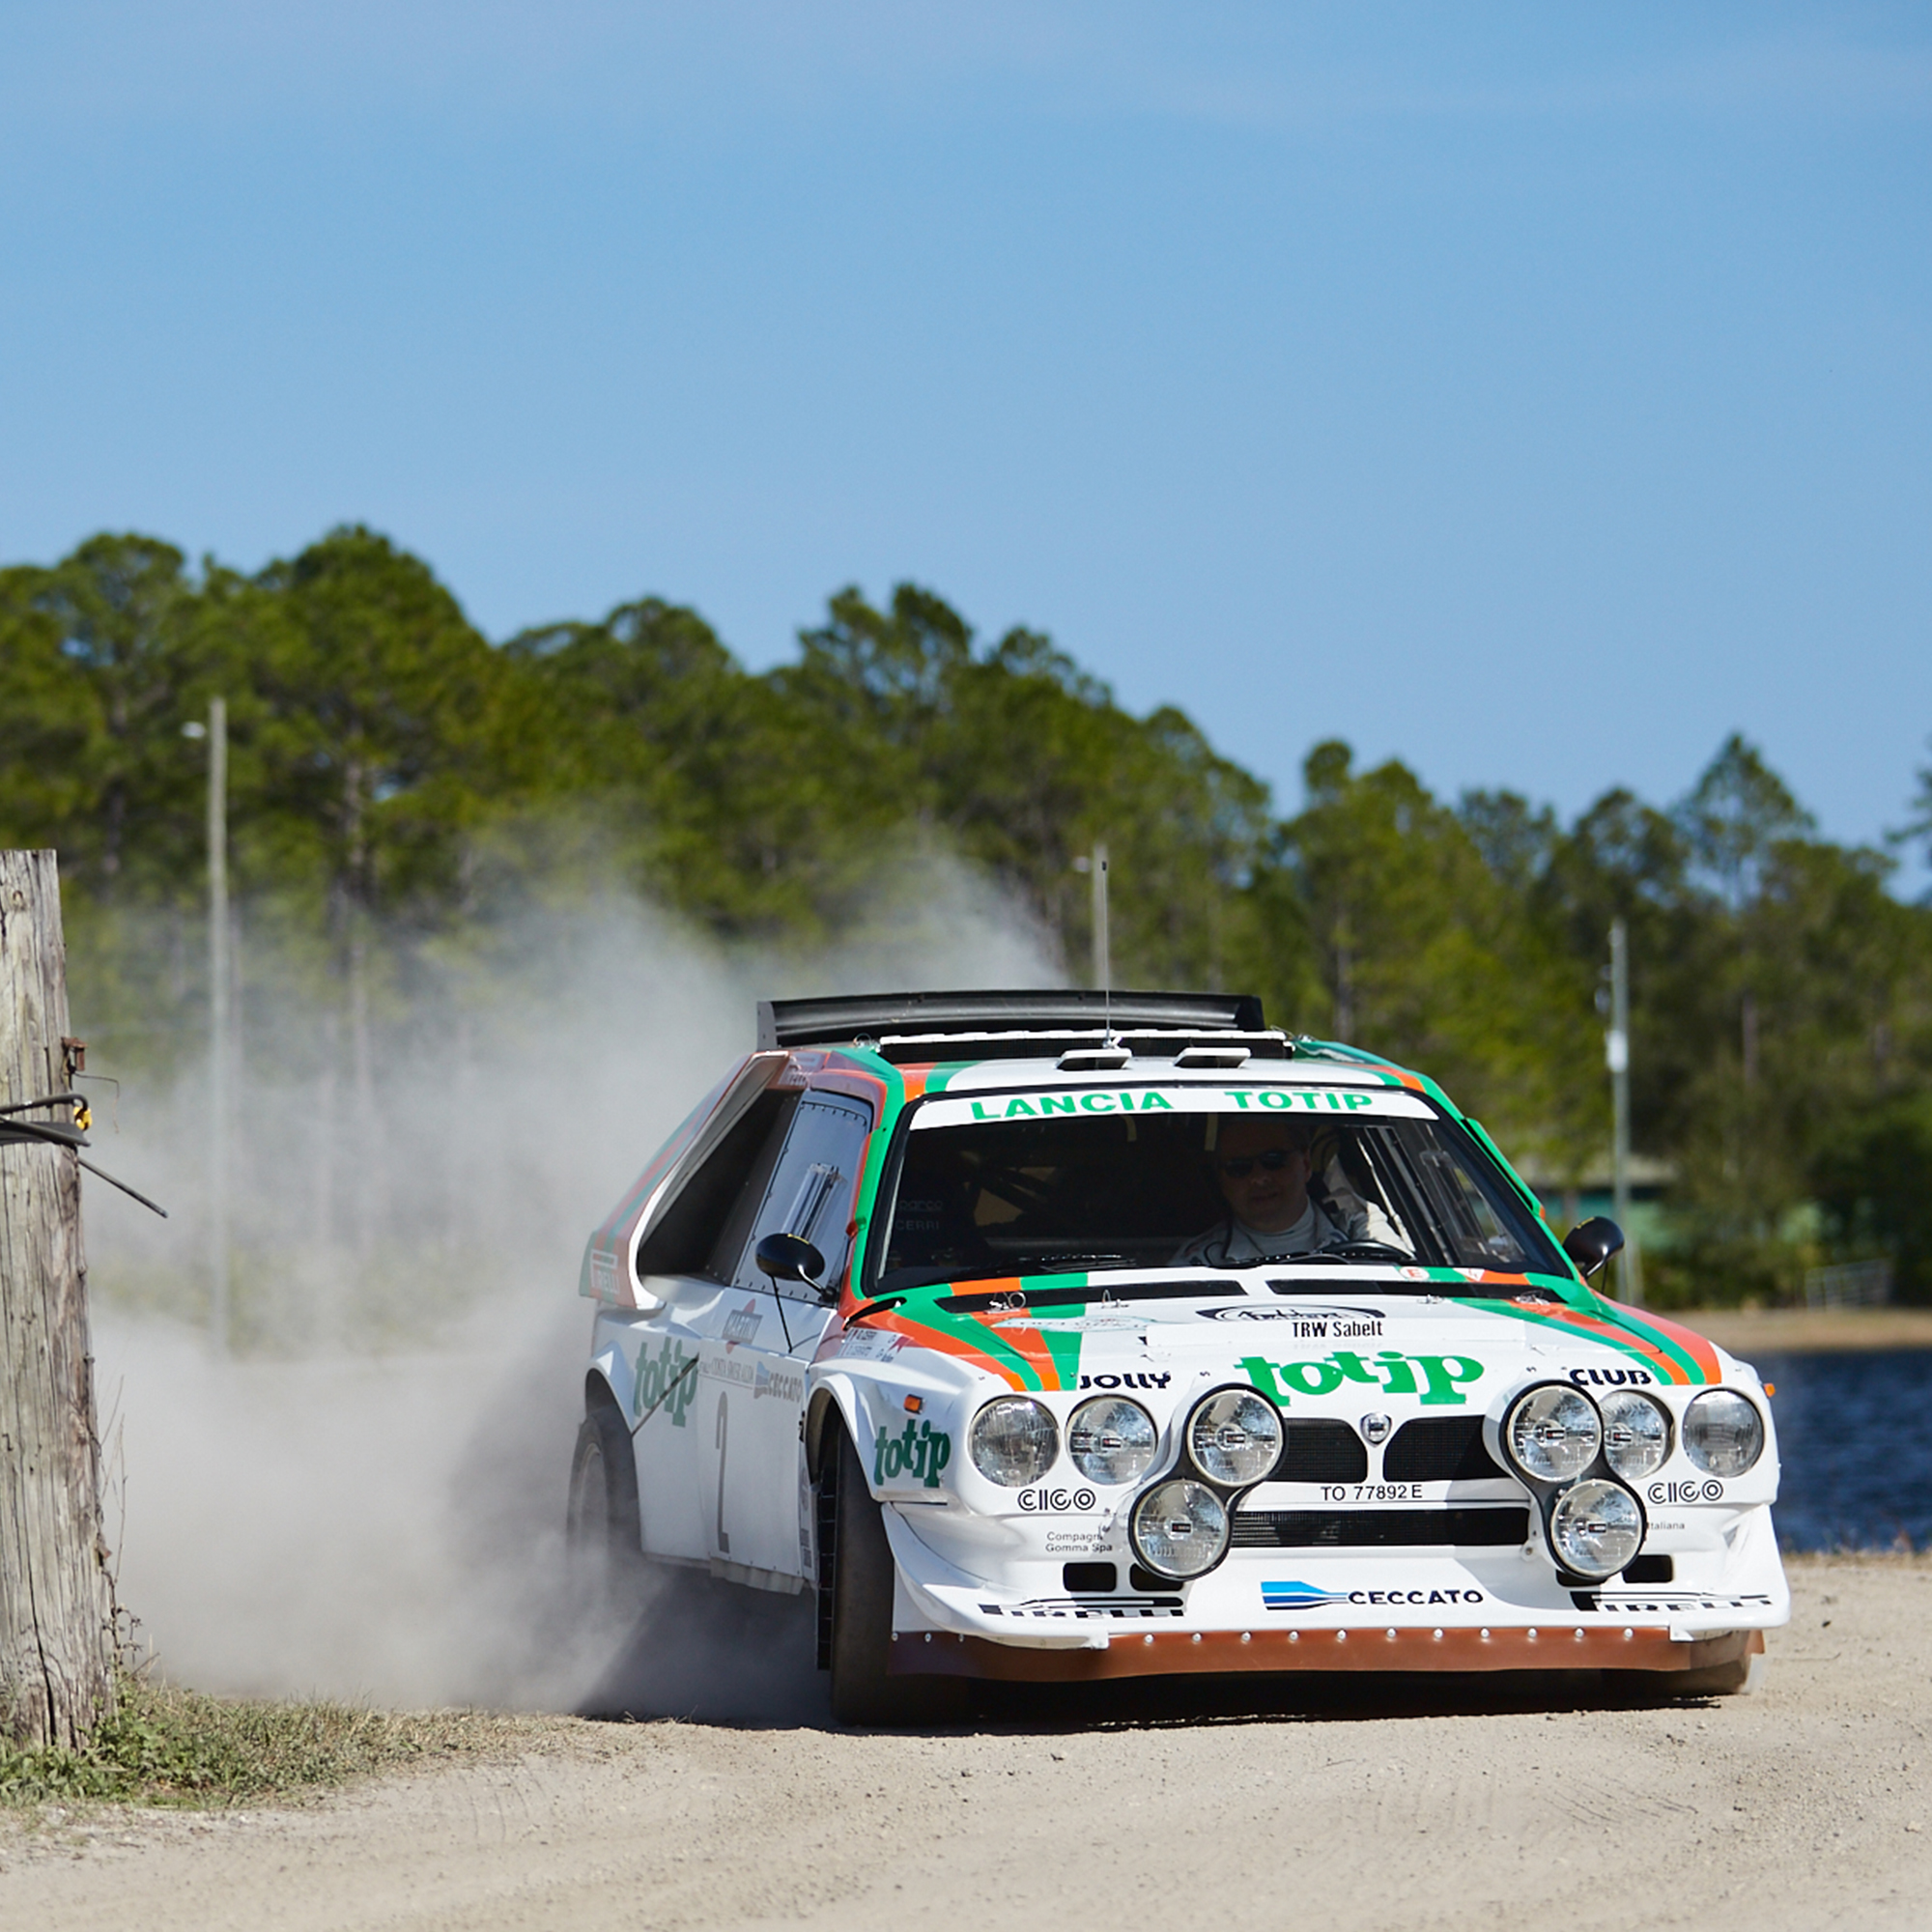 John Campion's Lifelong Obsession With Group B Rally Has Shaped A World Class Collection